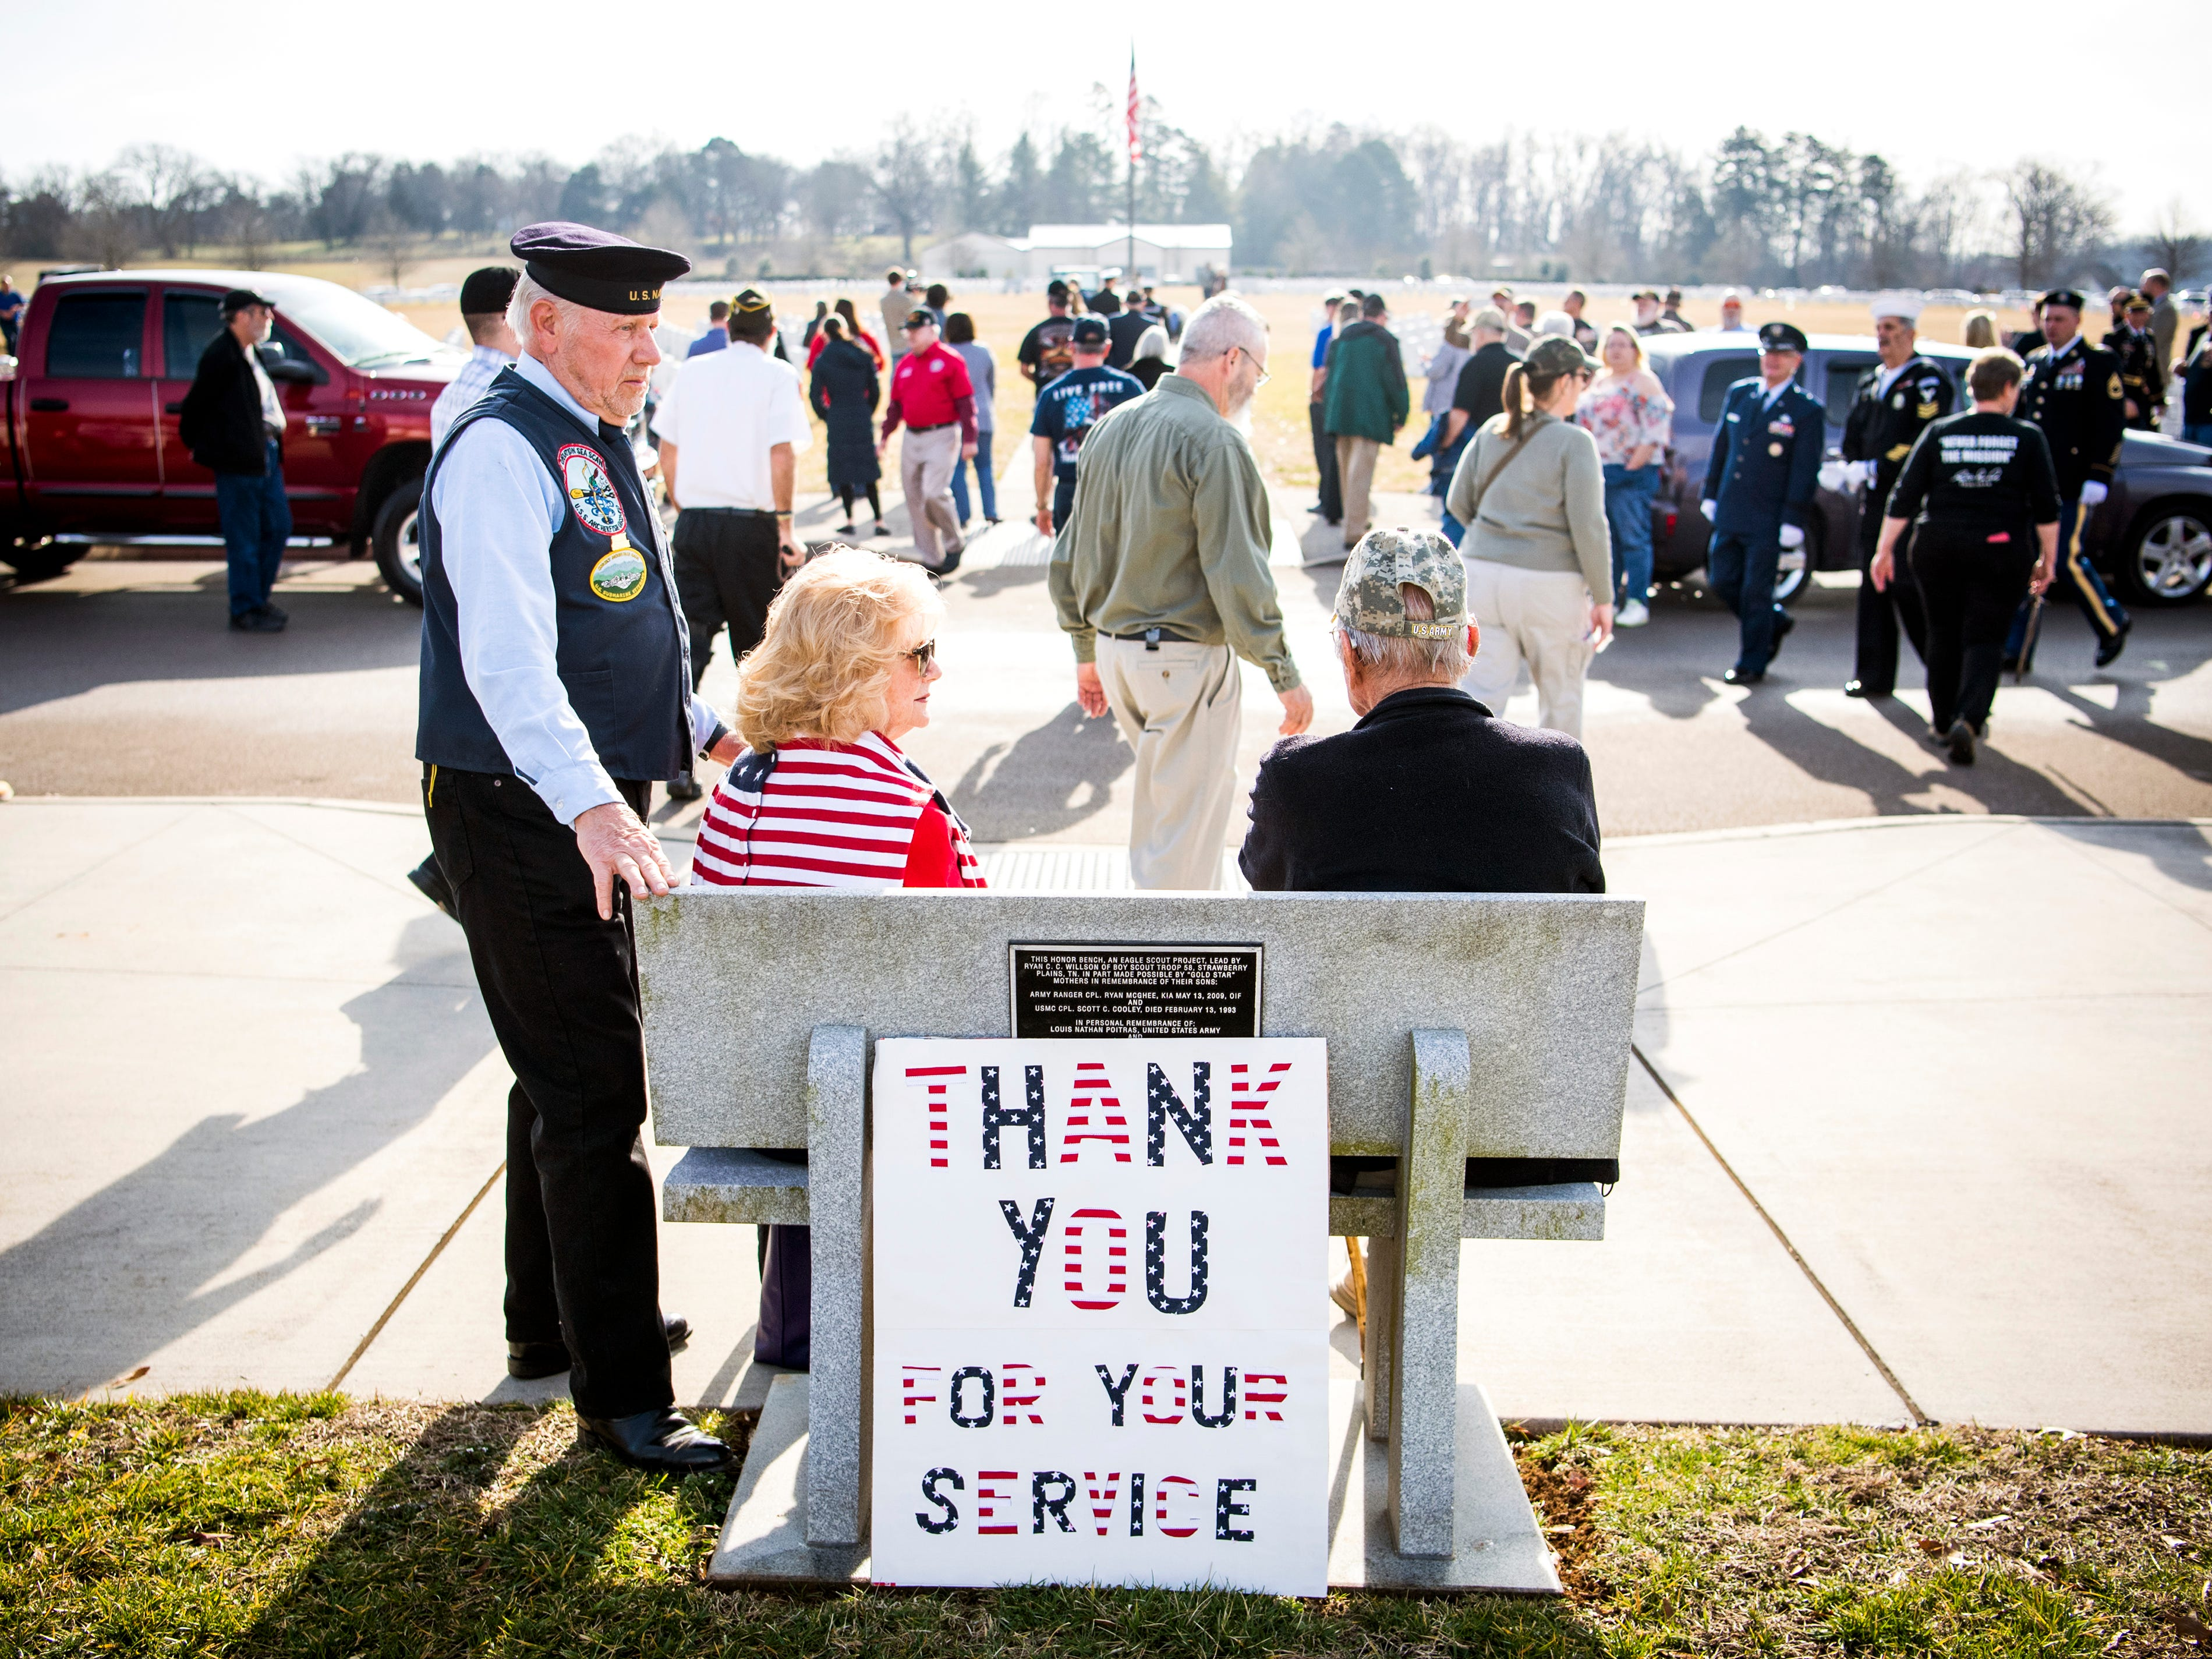 Veterans and other mourners leave  depart the East Tennessee Veterans Cemetery after a military memorial service for seven veterans whose bodies were unclaimed on Tuesday, February 5, 2019.